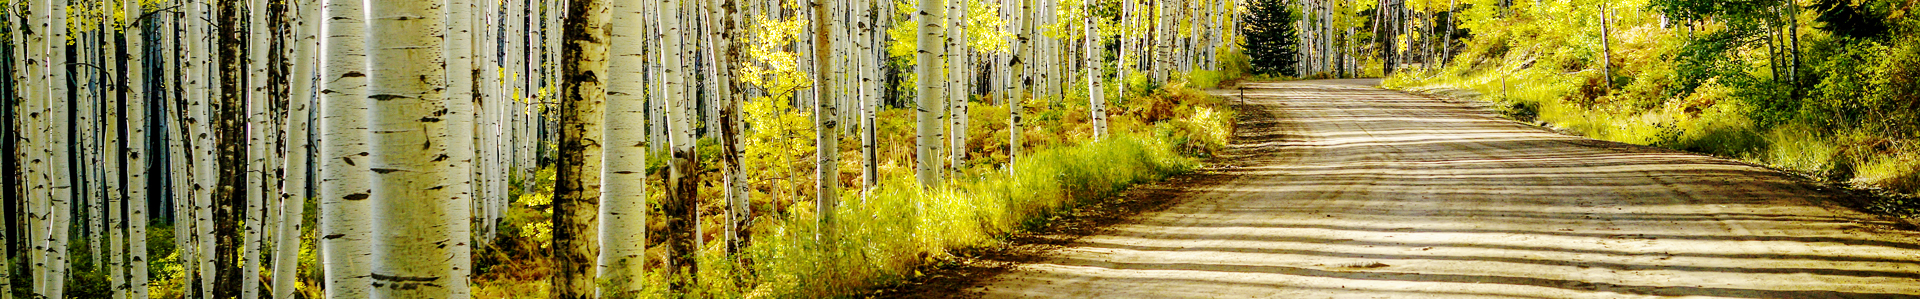 Dirt road through aspen trees